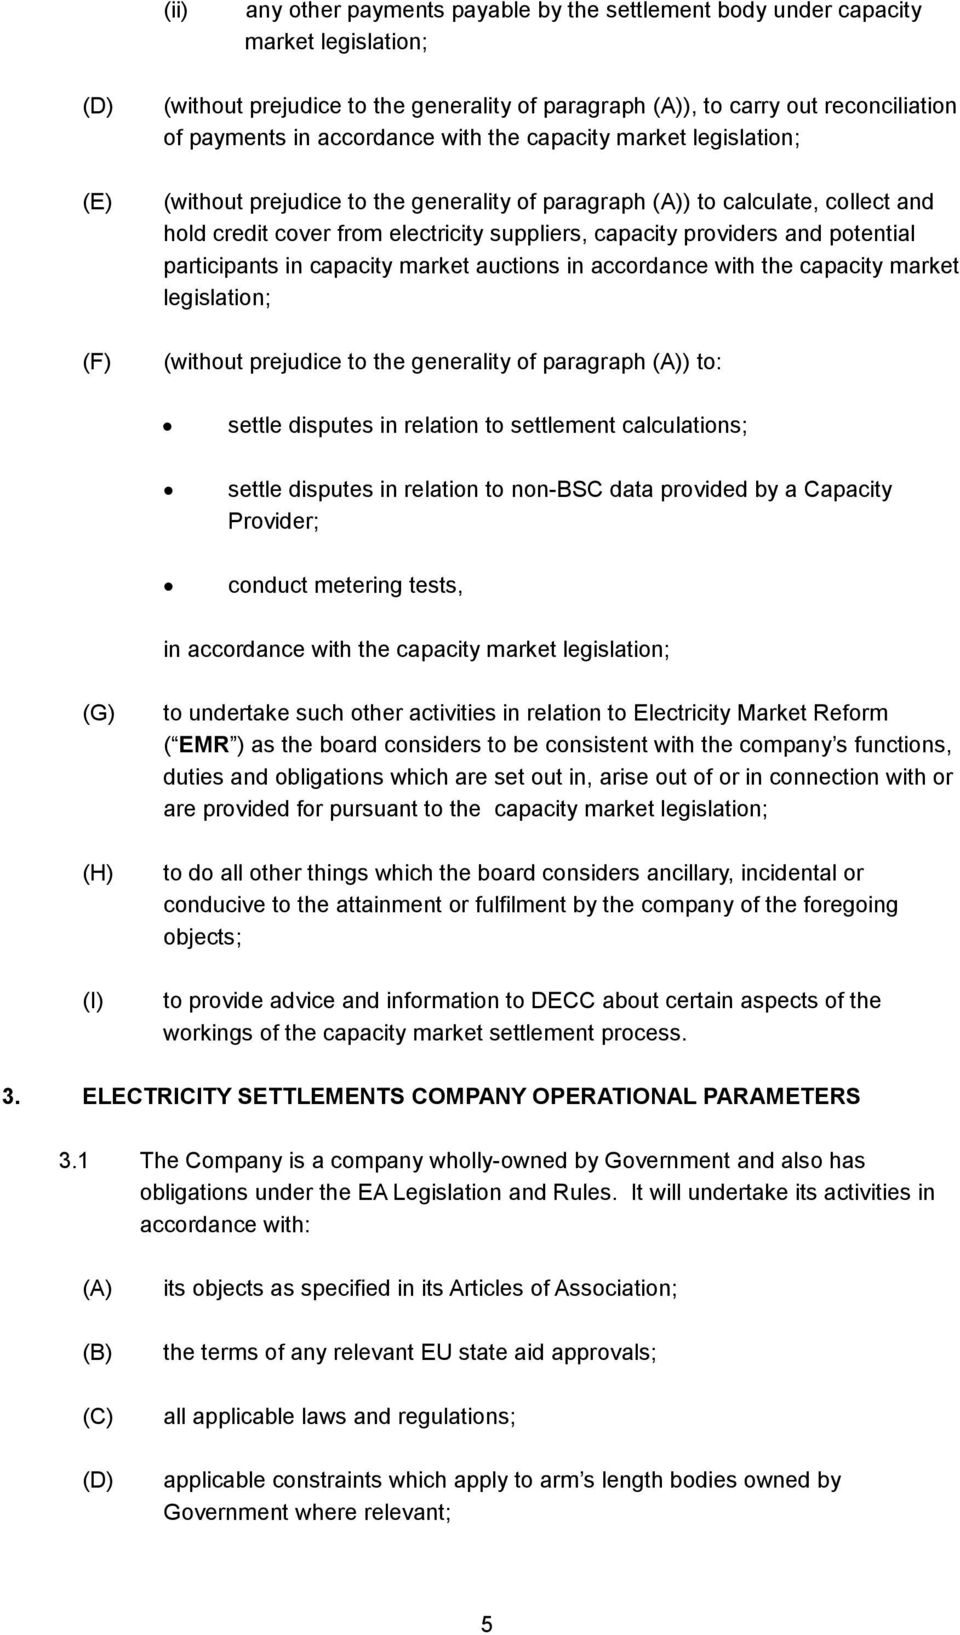 potential participants in capacity market auctions in accordance with the capacity market legislation; (without prejudice to the generality of paragraph ) to: settle disputes in relation to